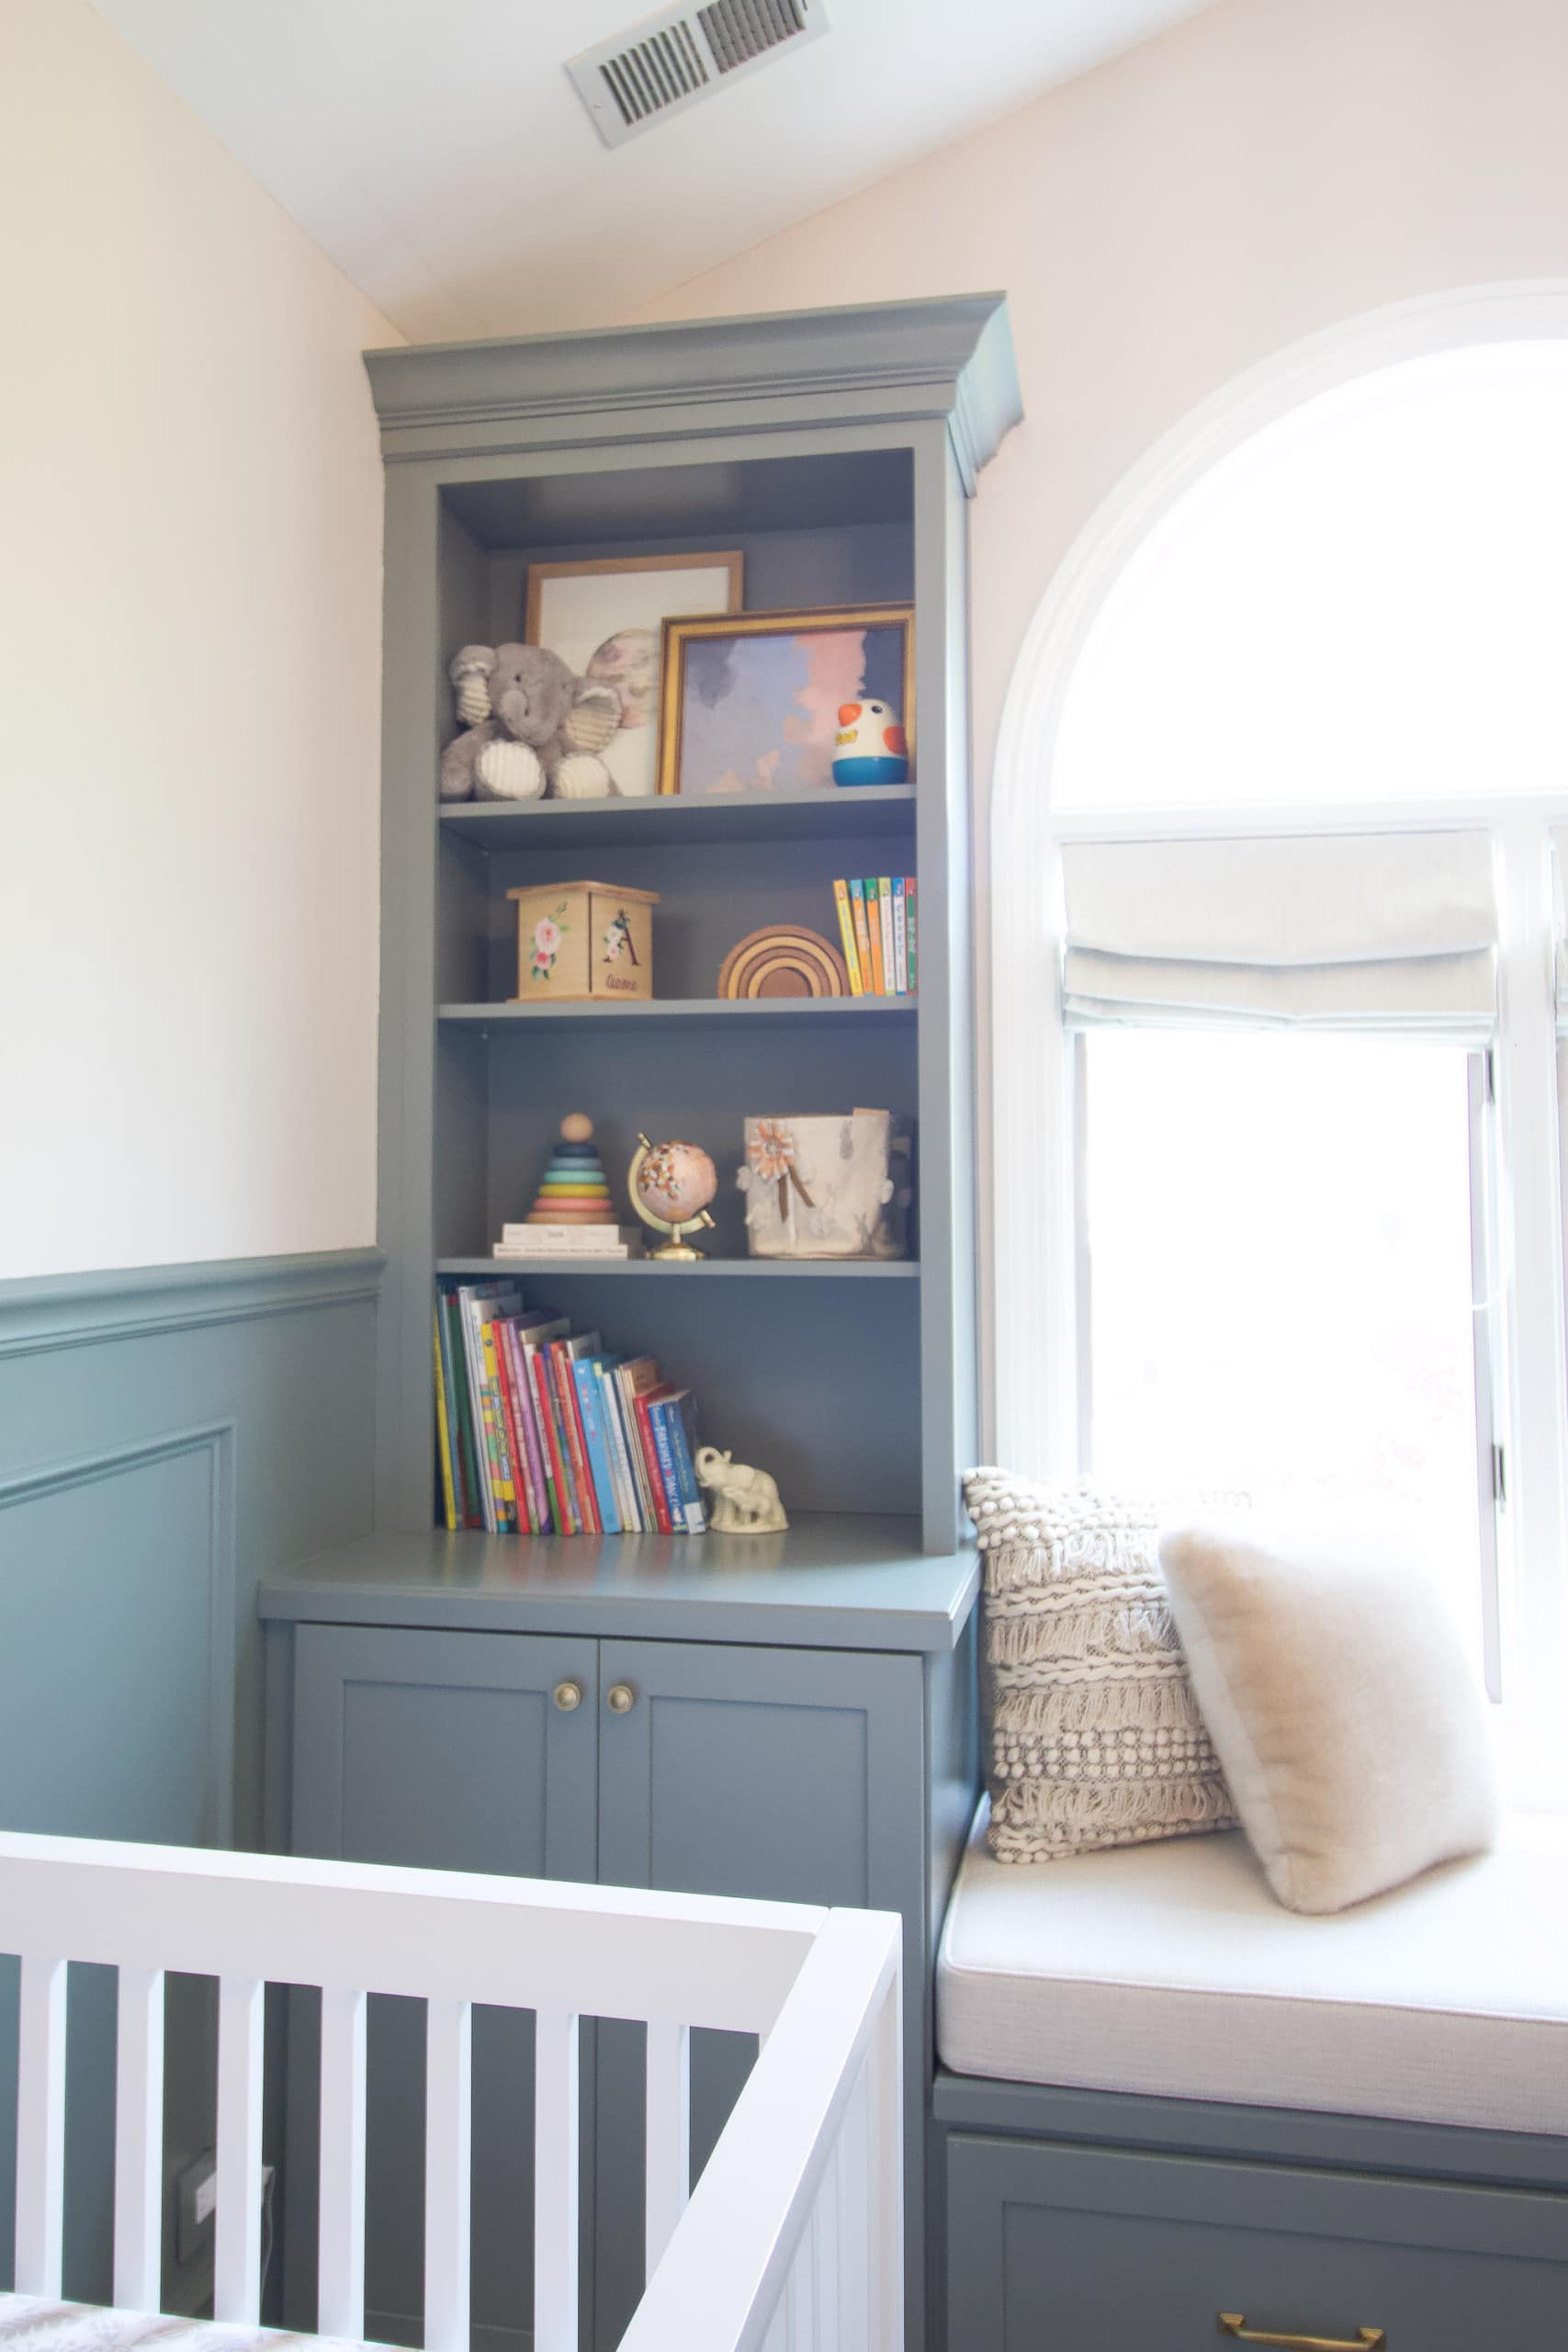 Tips to style shelves in a nursery or kid's room